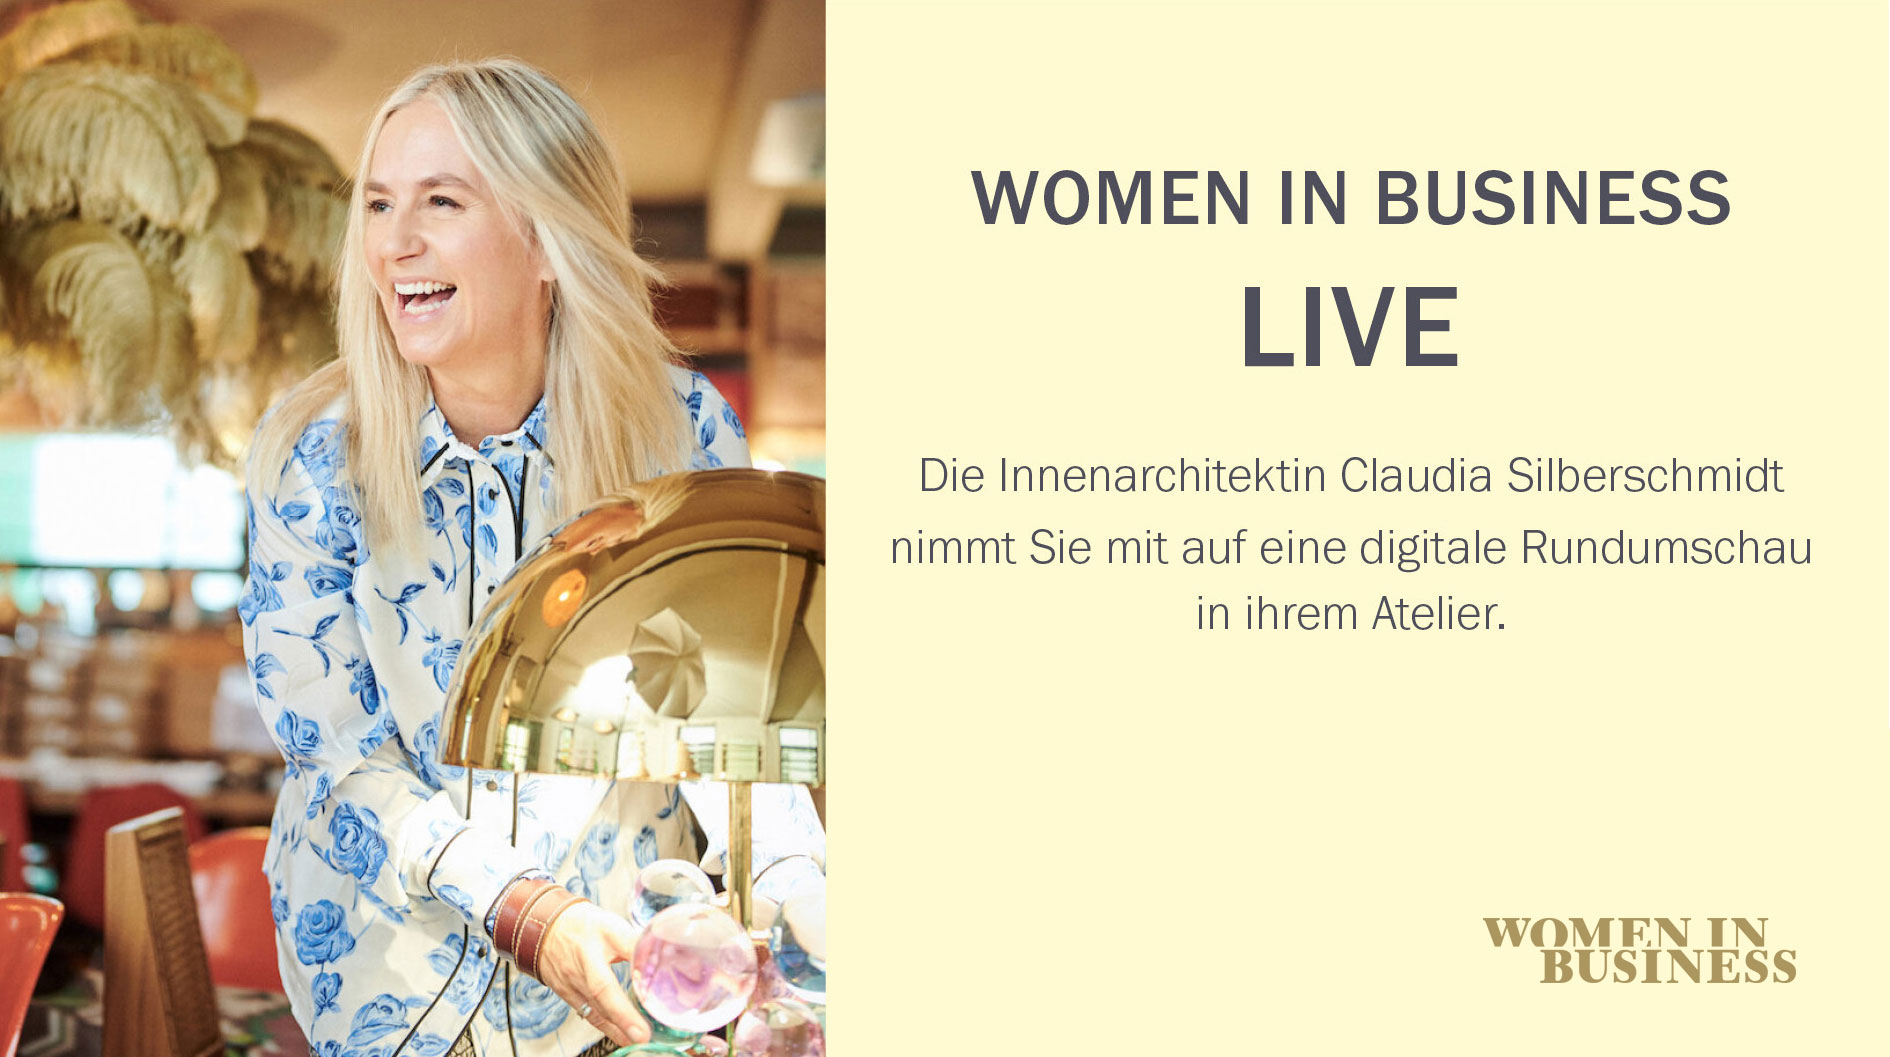 WOMEN IN BUSINESS LIVE mit Claudia Silberschmidt